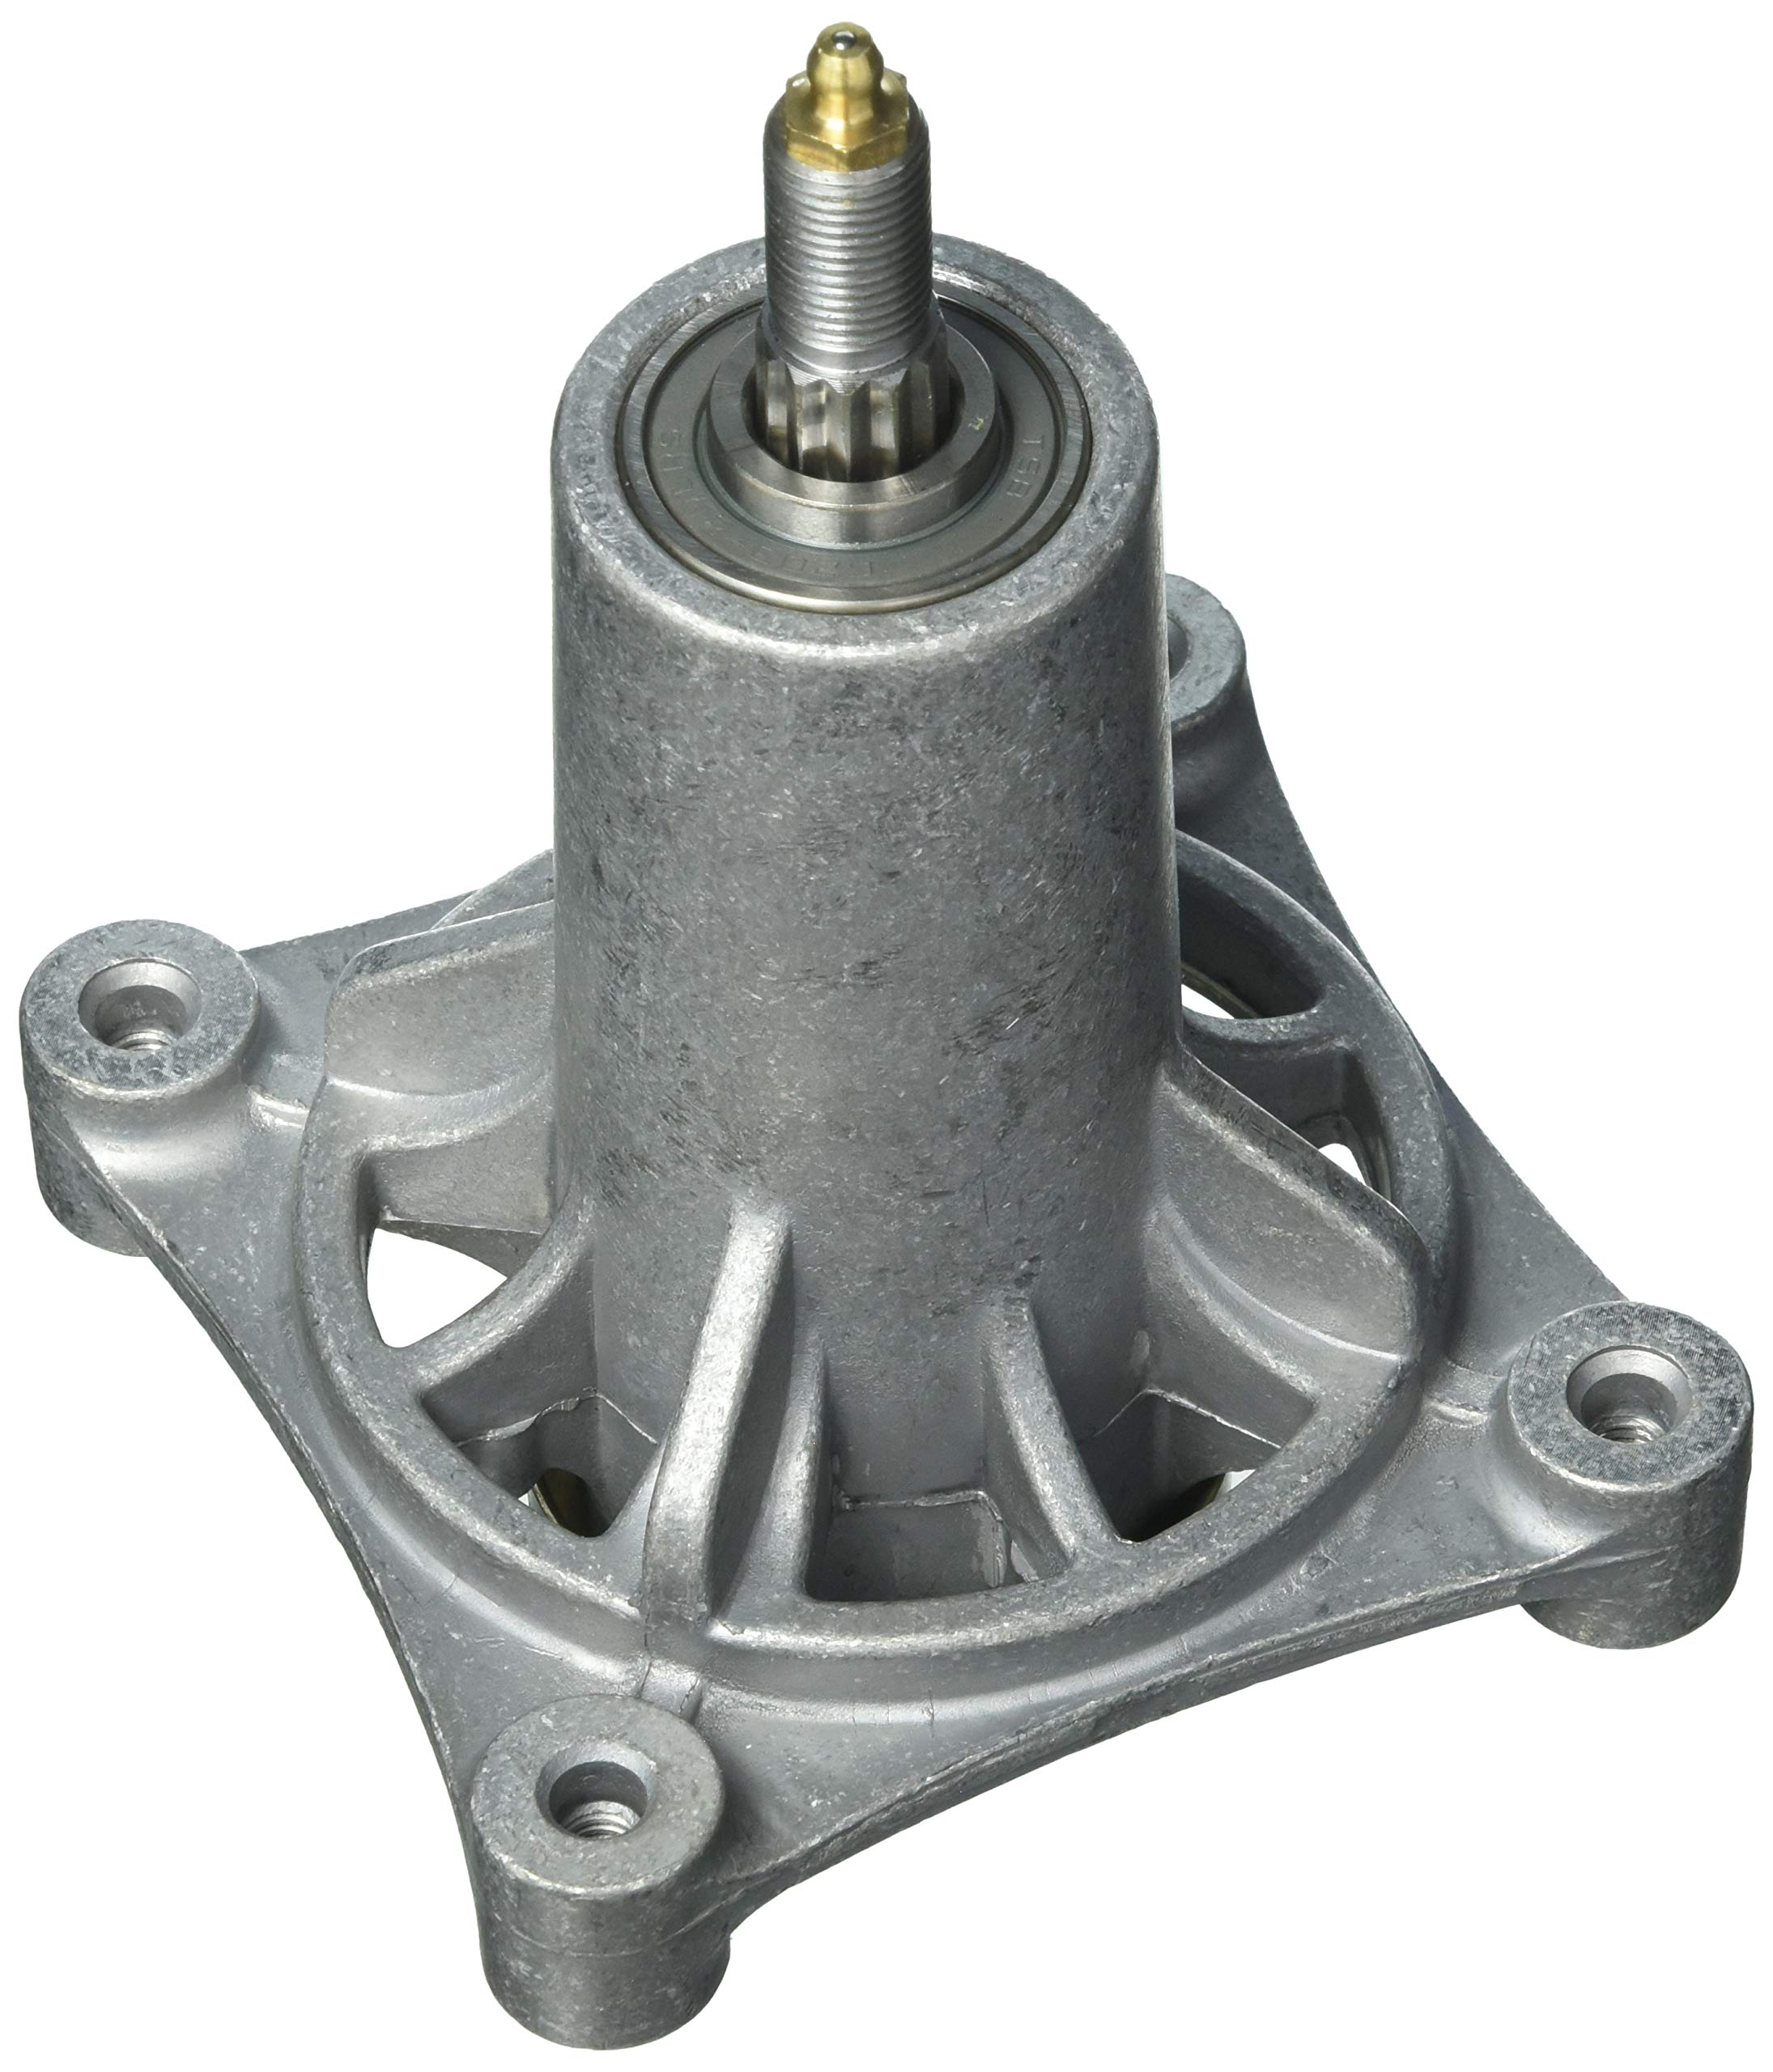 MaxPower 11590 Spindle Assembly Replaces Ariens 21549012, Husqvarna 532-18-72-92, 587125401, Poulan 539-112057 and Many More by Maxpower